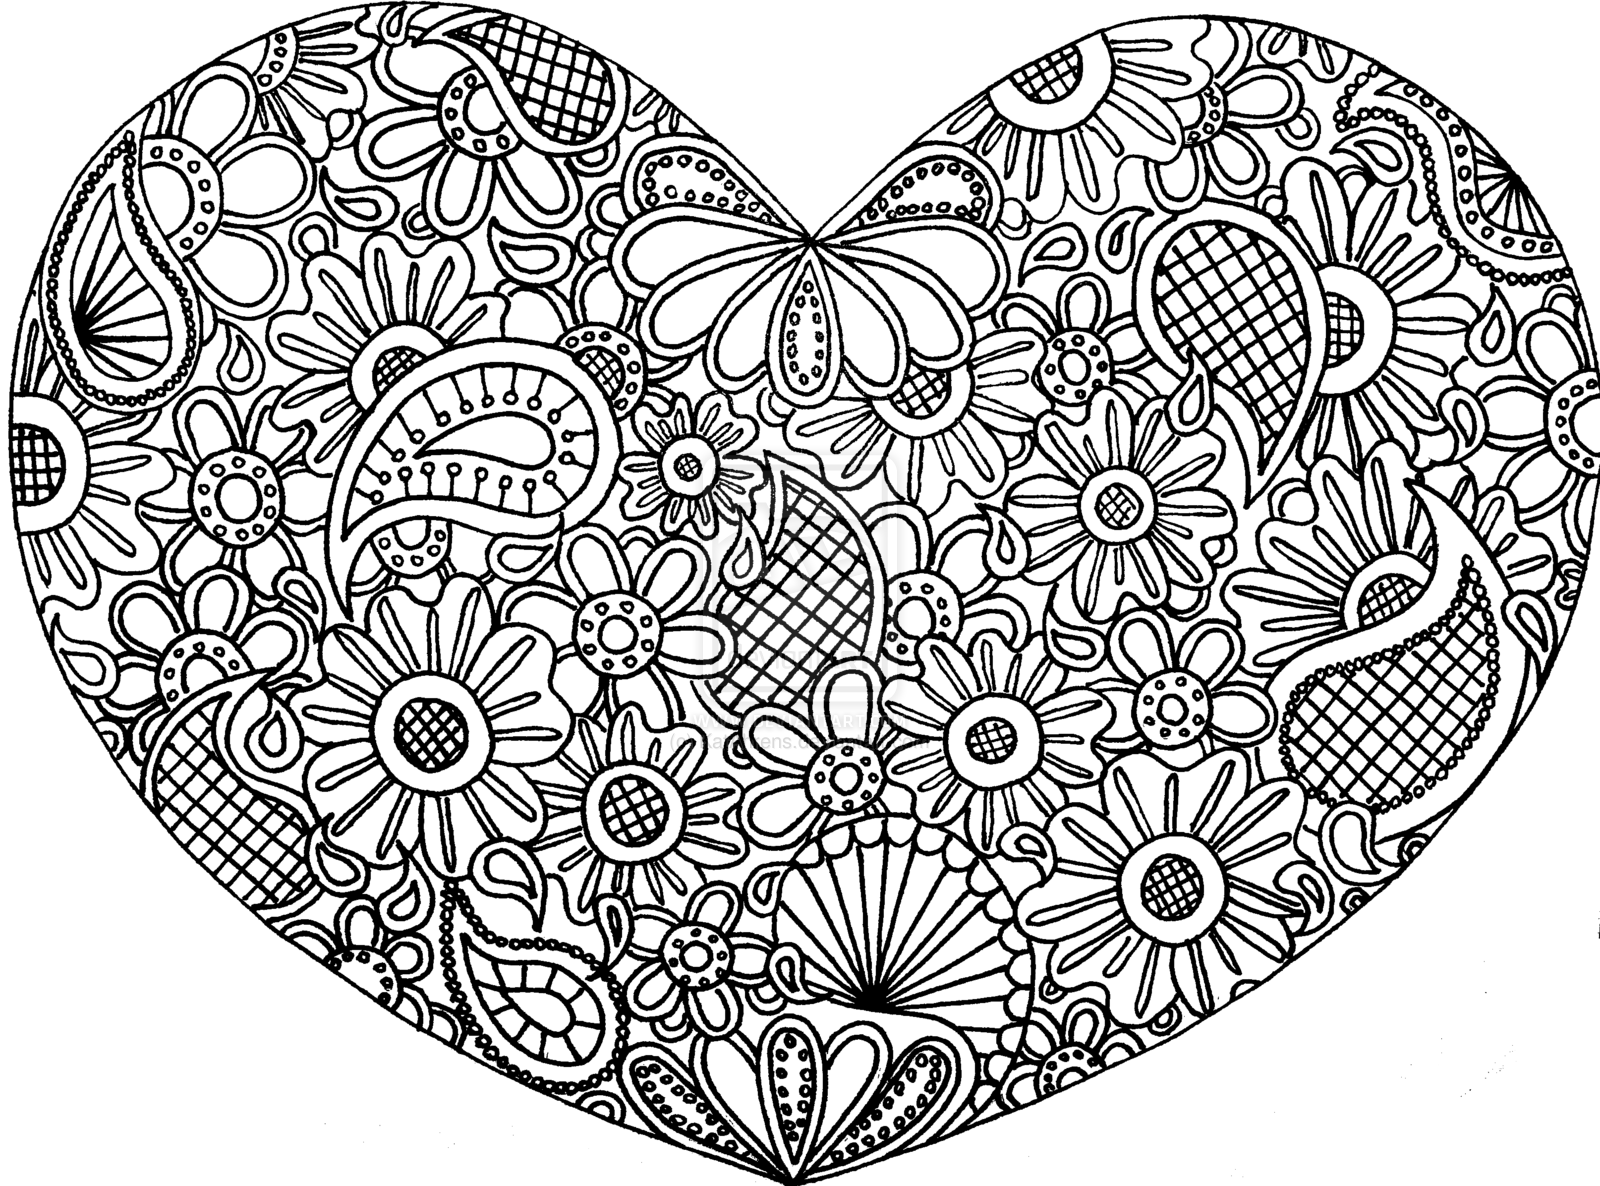 8 Images of Printable Detailed Doodle Art Page